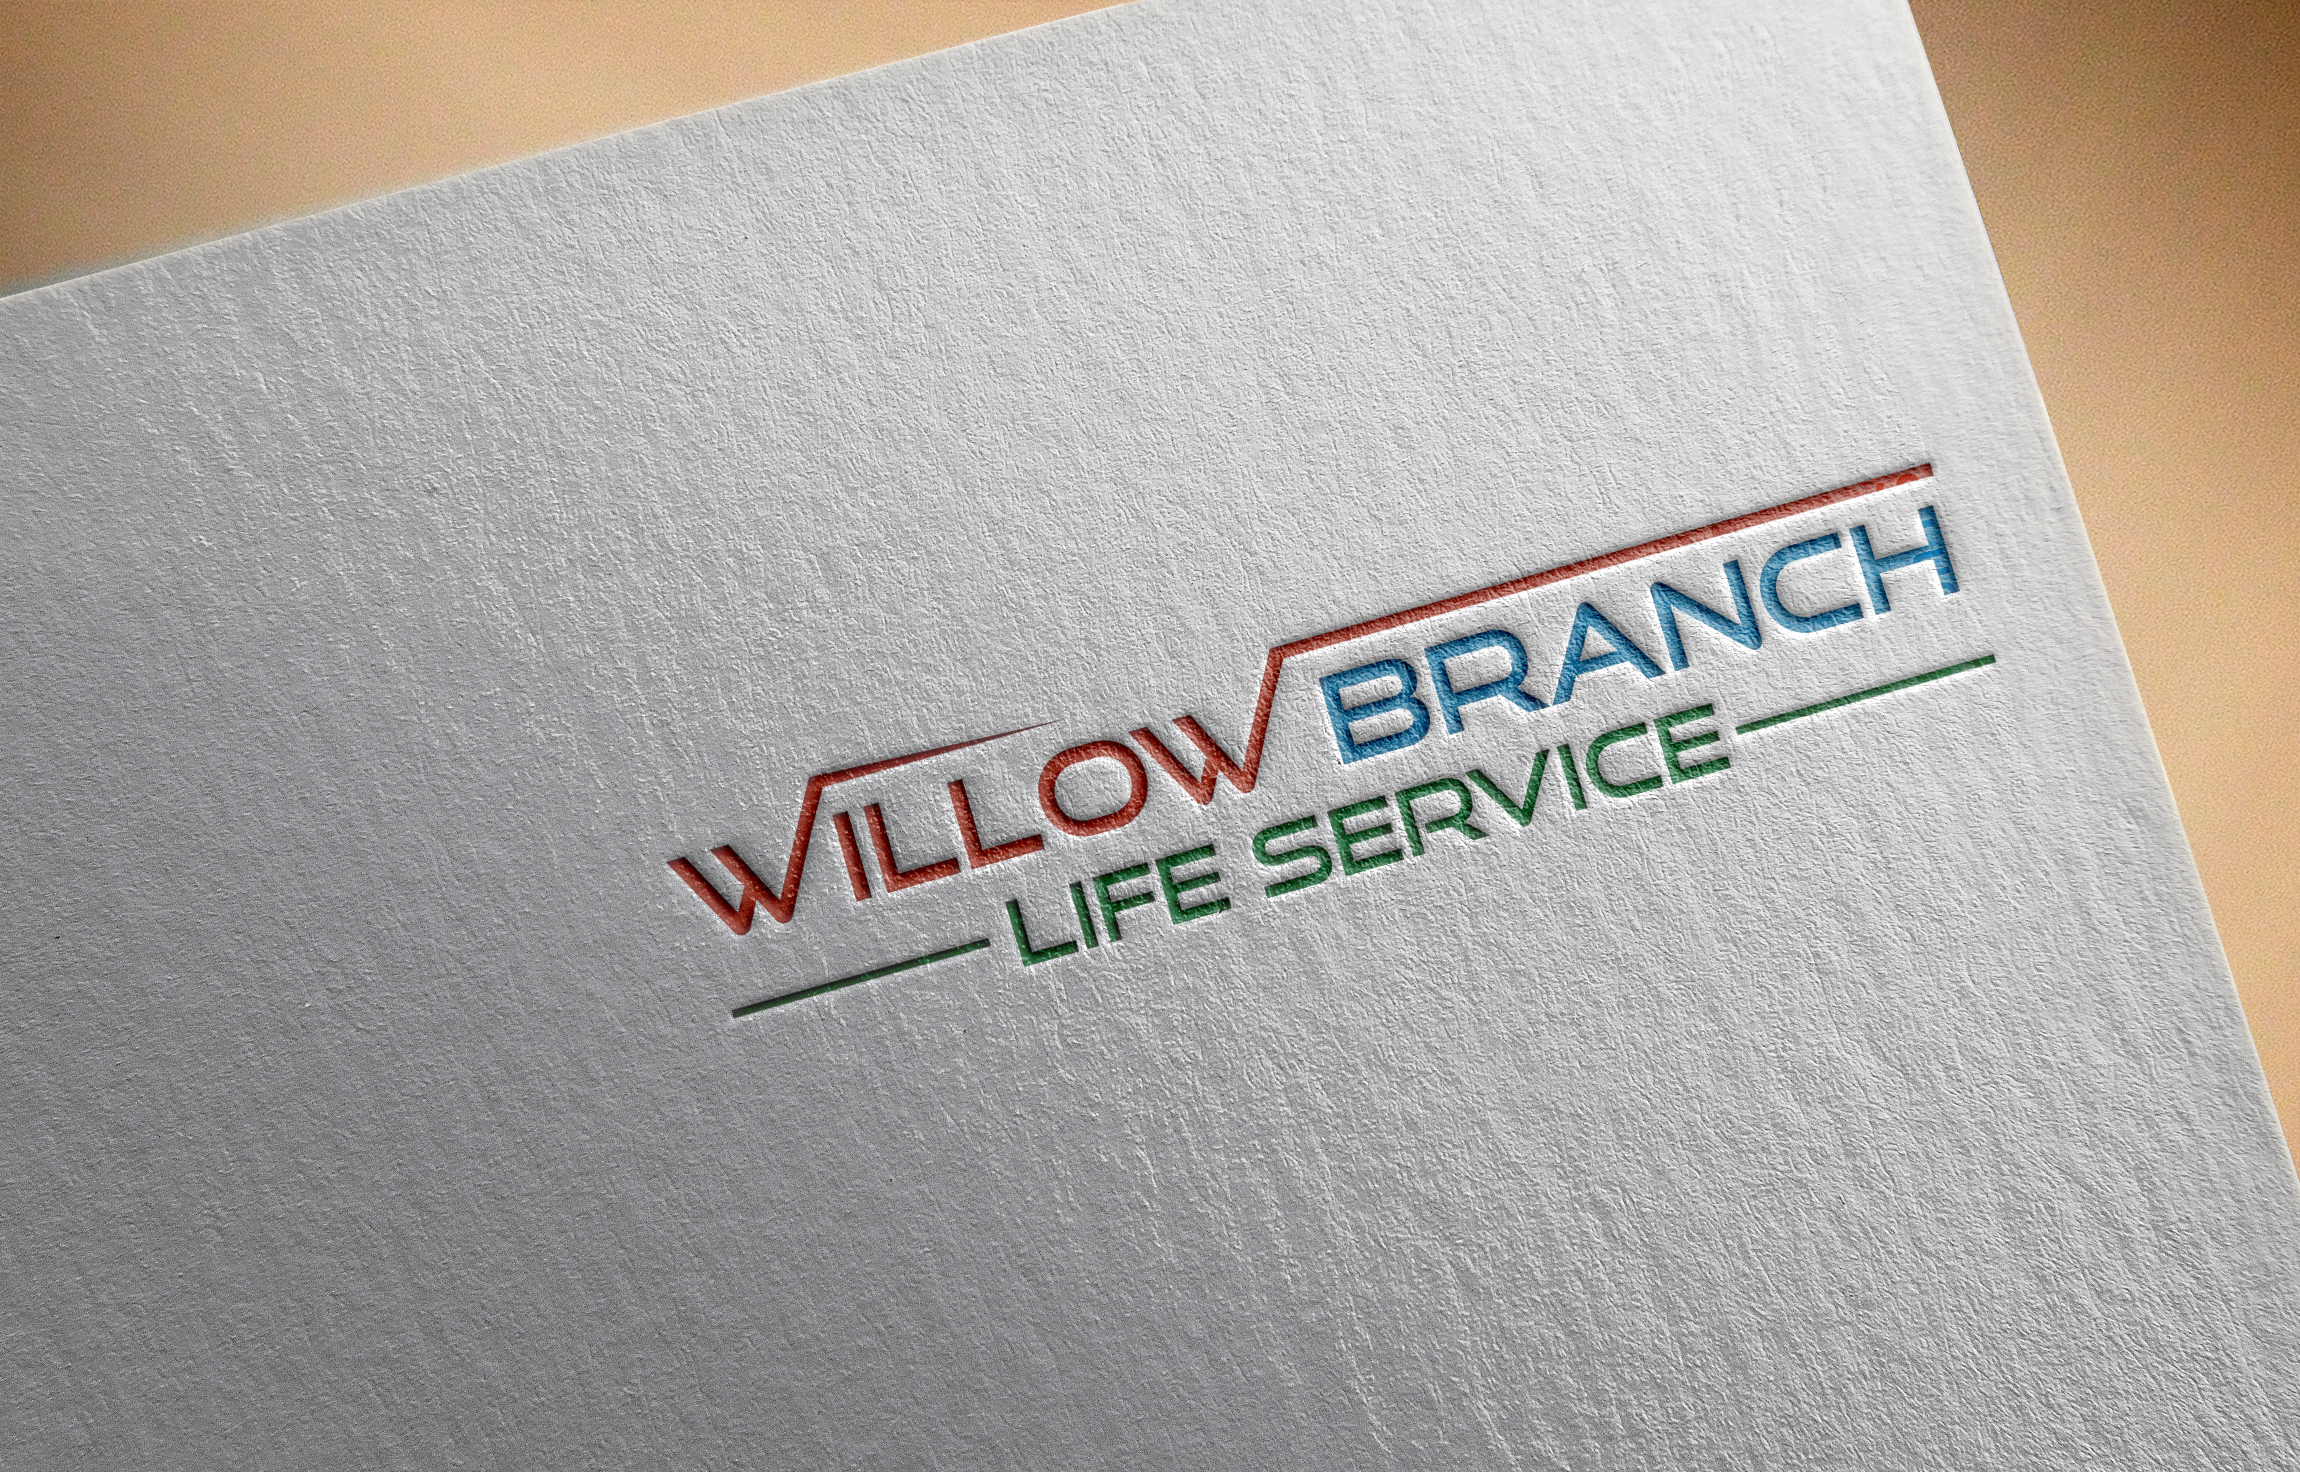 Logo Design by Prohor Ghagra - Entry No. 154 in the Logo Design Contest Artistic Logo Design for Willow Branch Life Service.